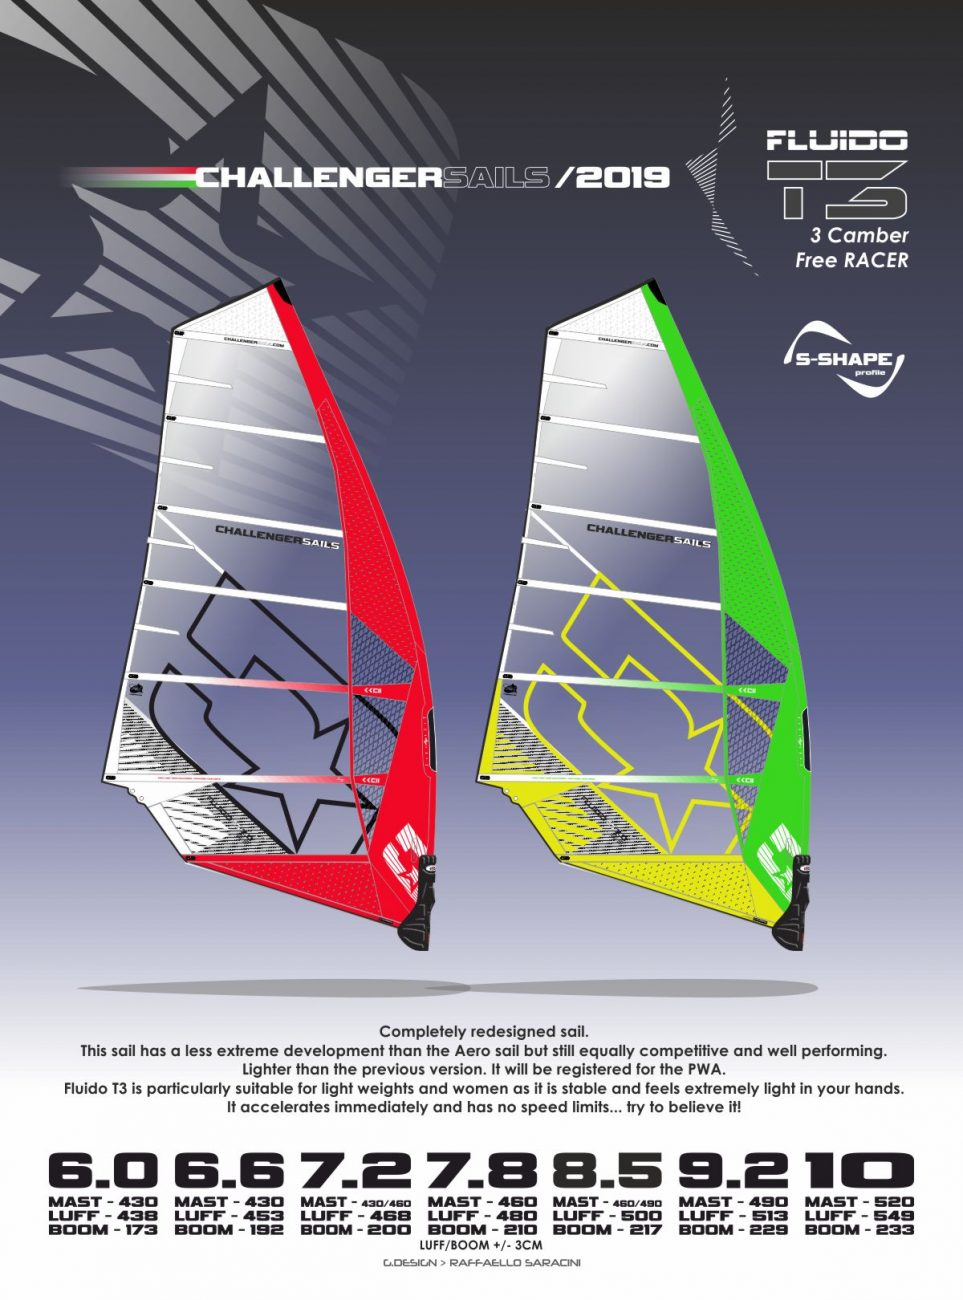 CHS 2019 FluidoT3 - 3 cam racing machine for lighter and samller rider or racers, who are looking for a sail with handling